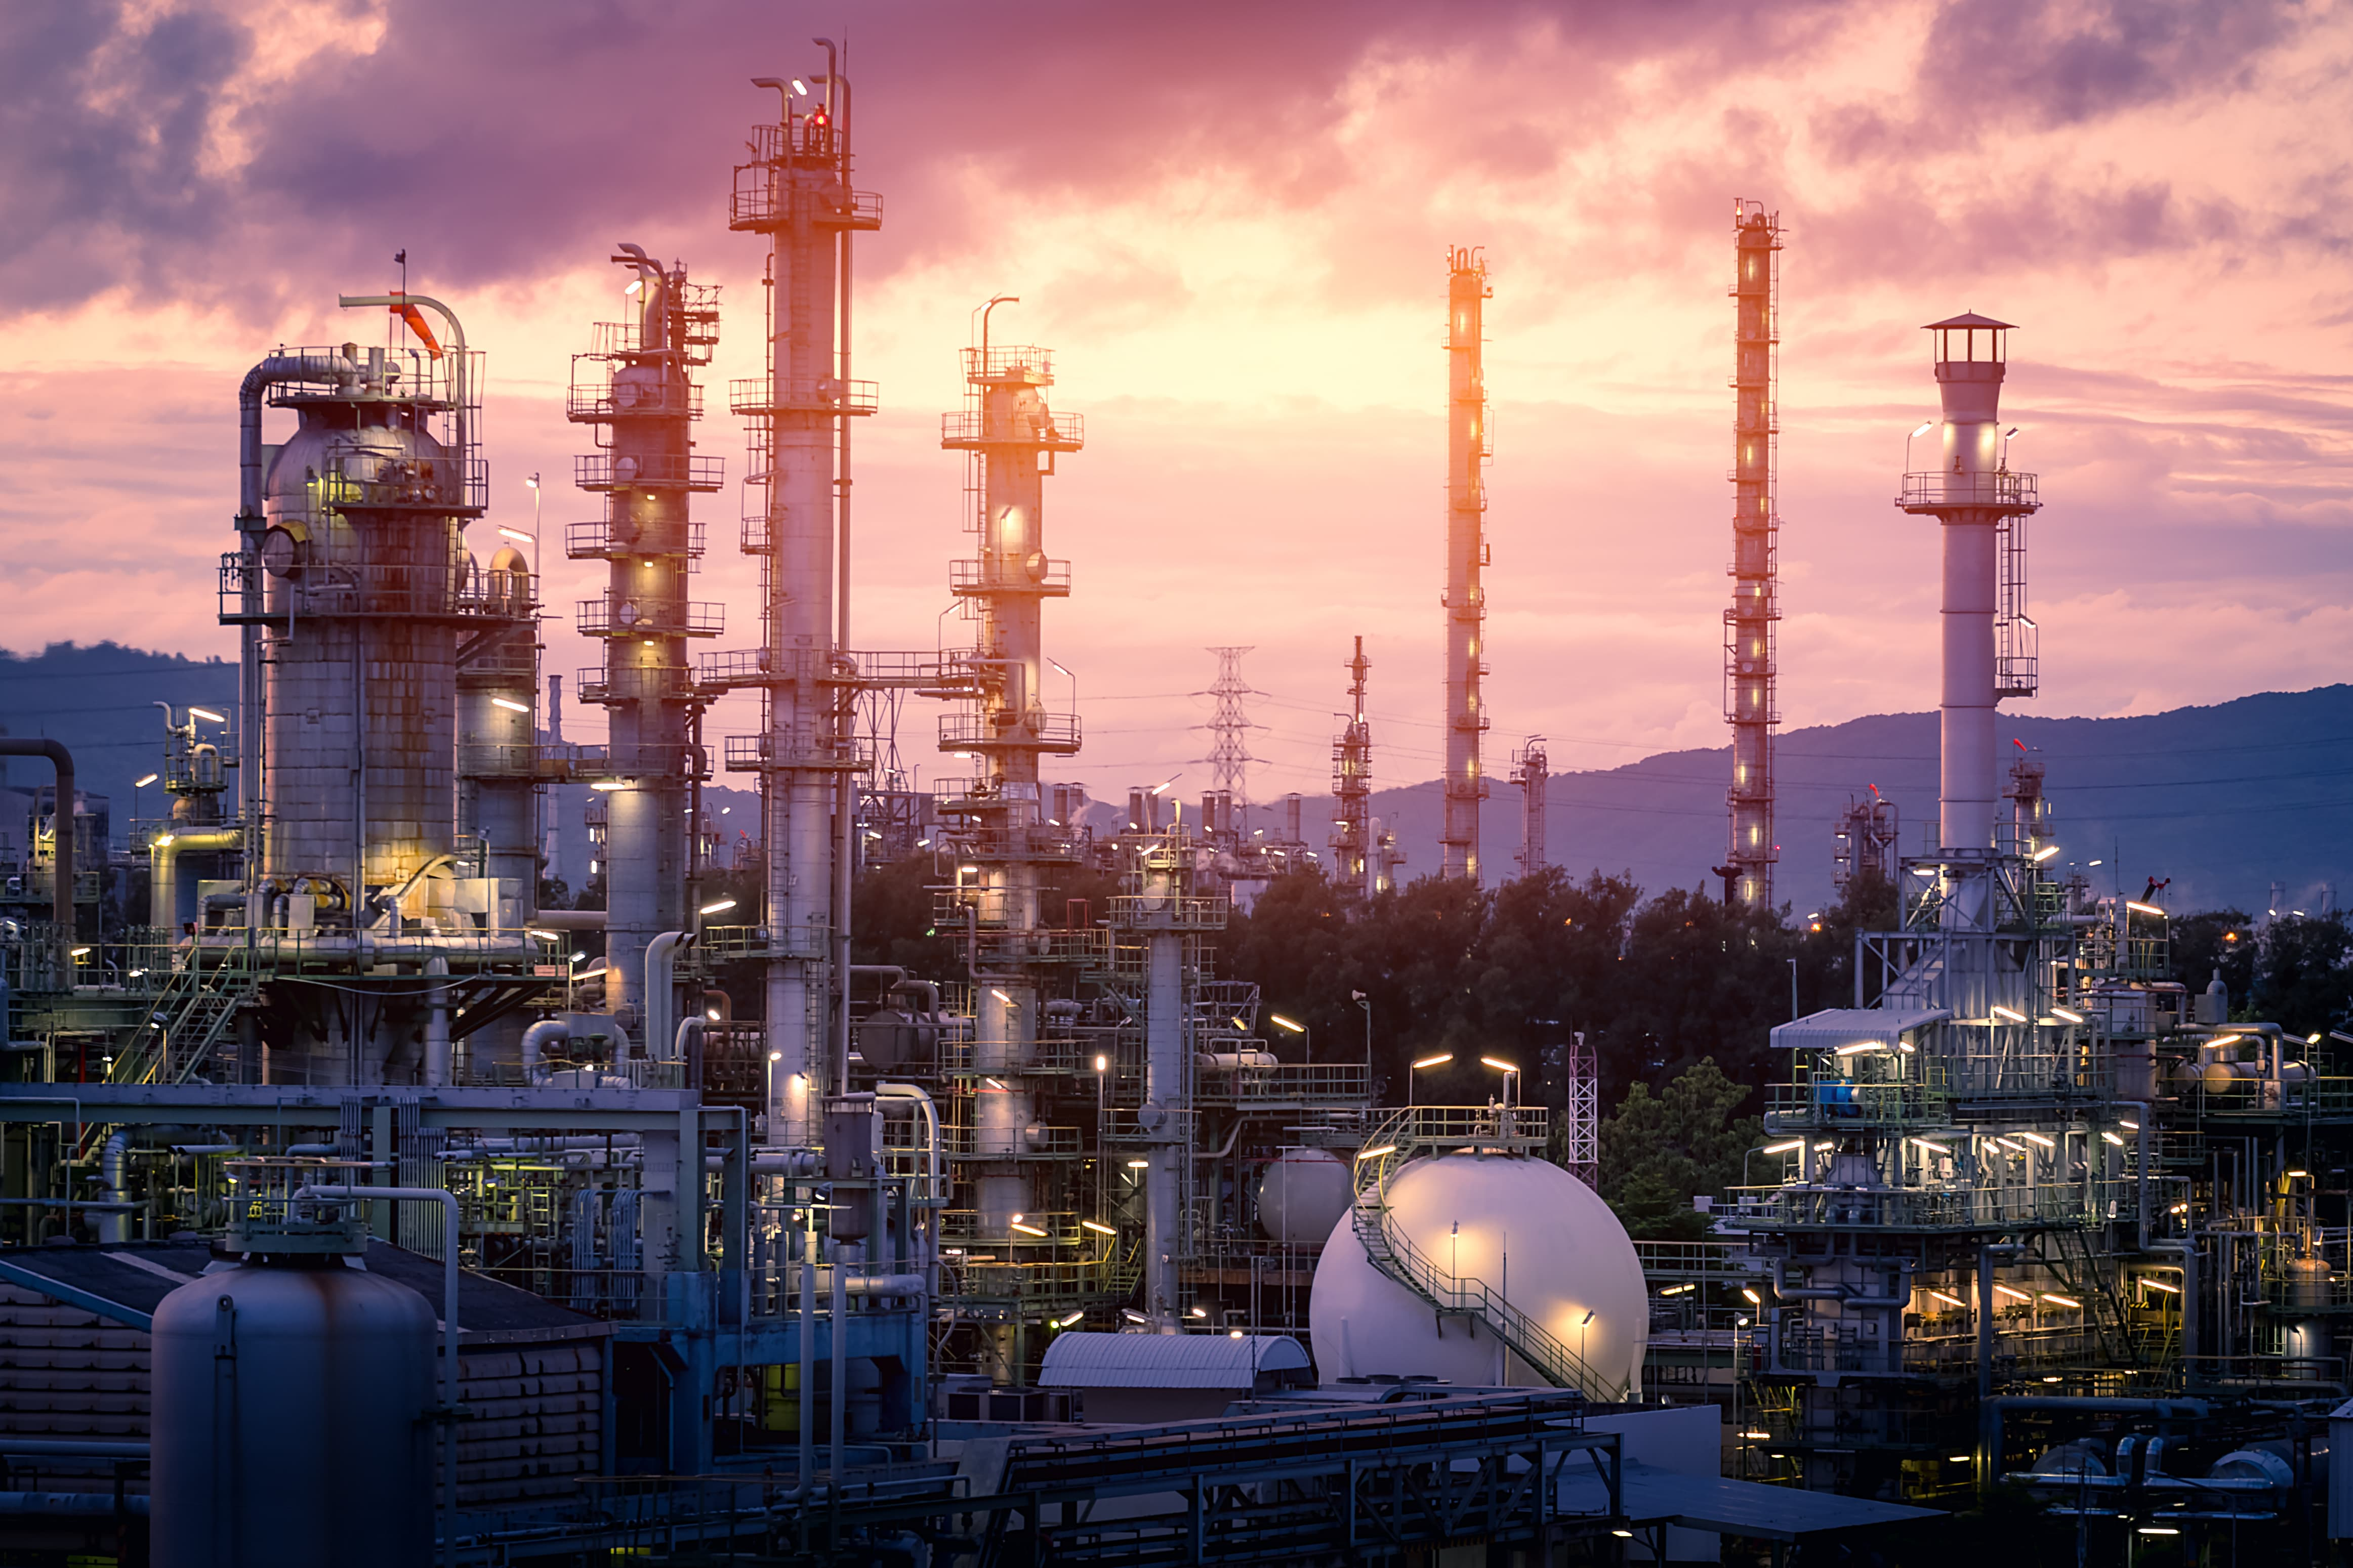 refinery in mountains at sunset